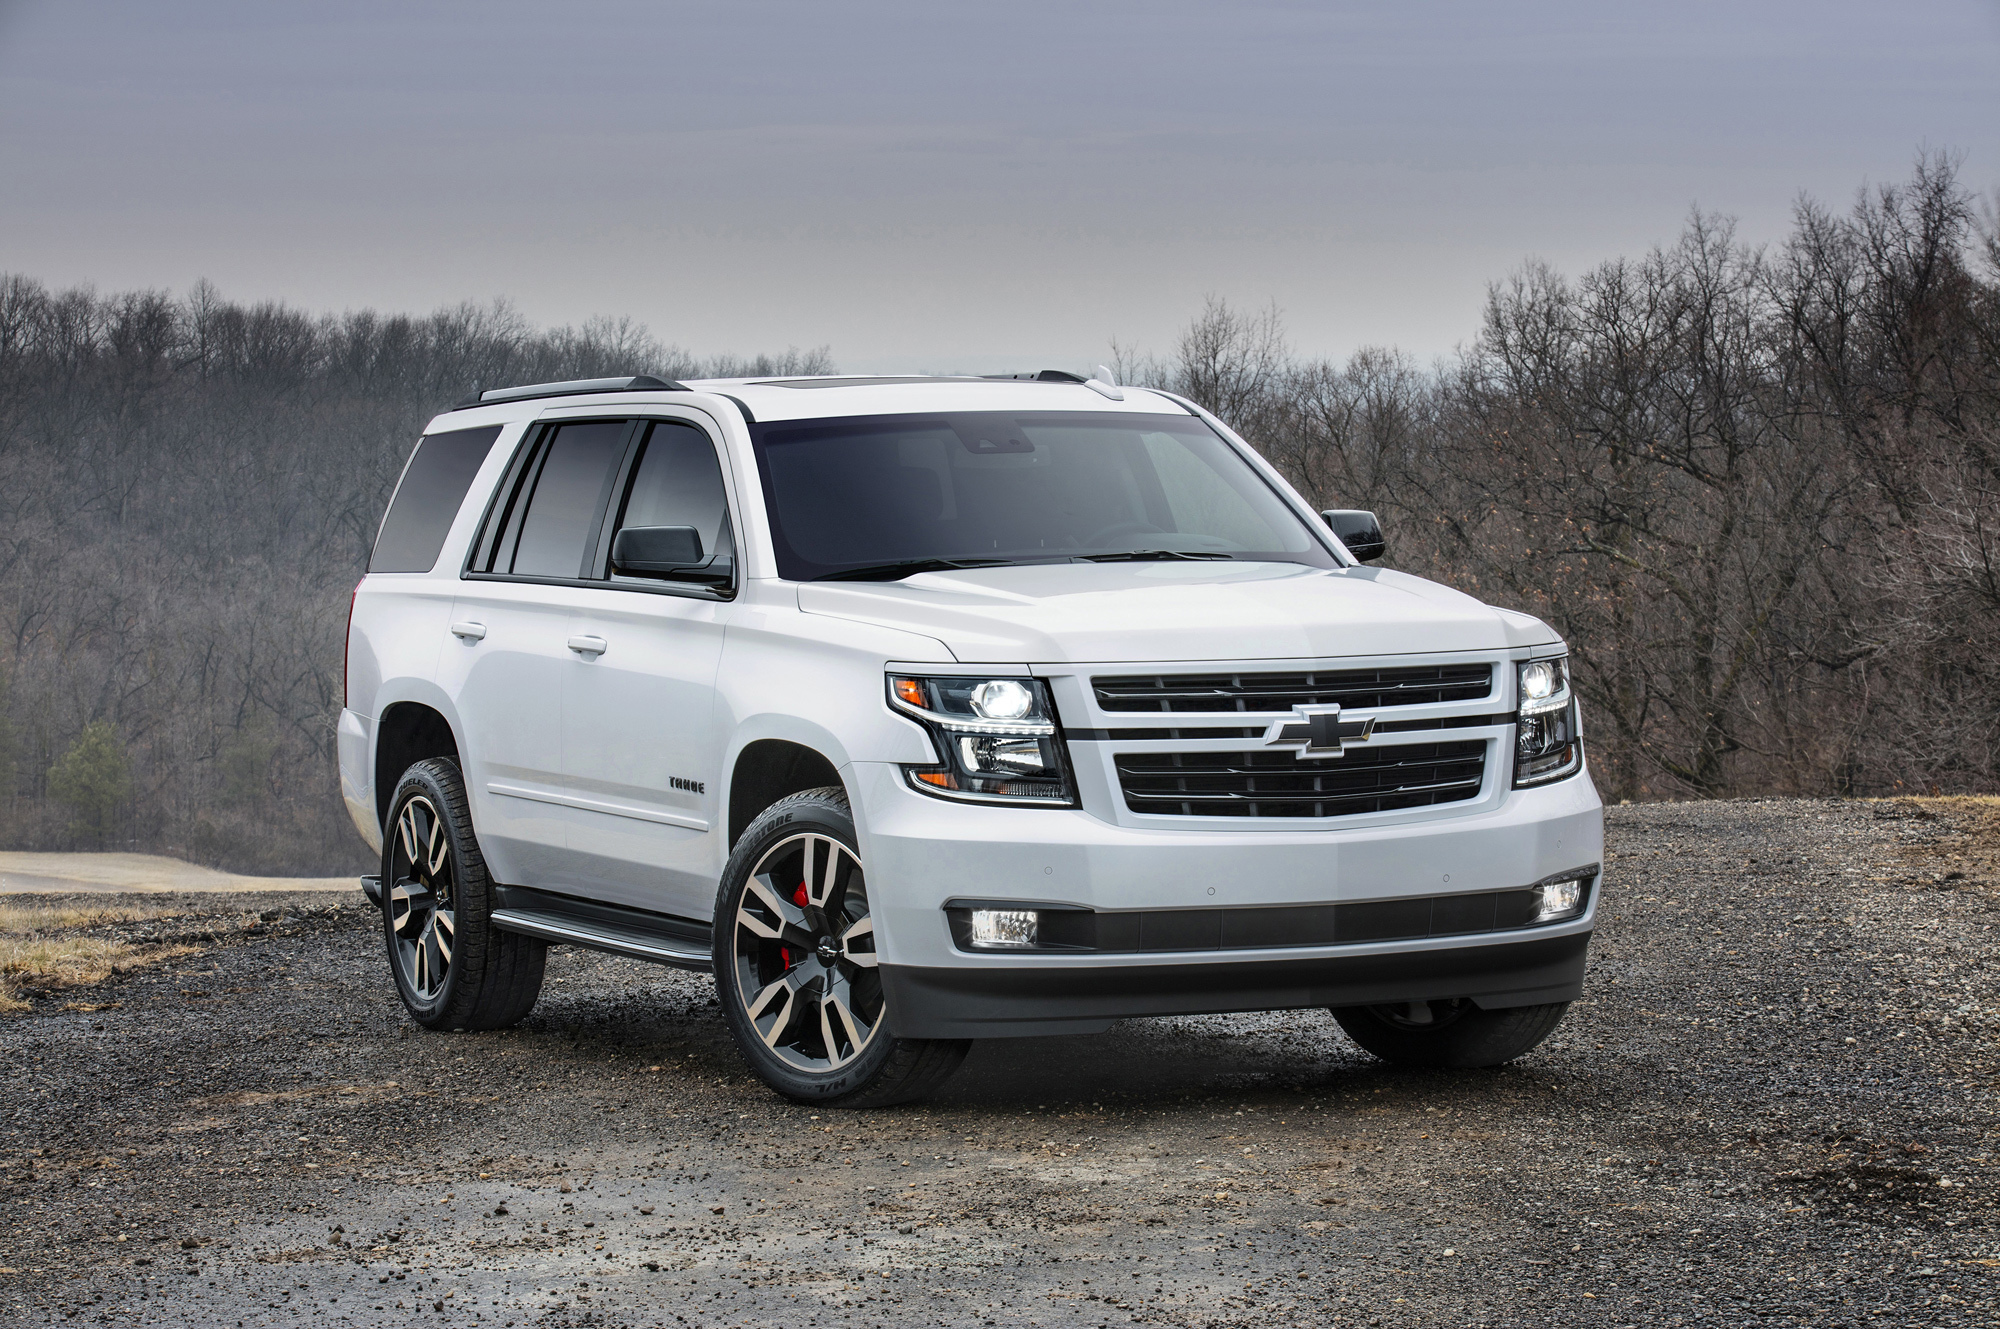 chevrolet tahoe rst wallpapers images photos pictures